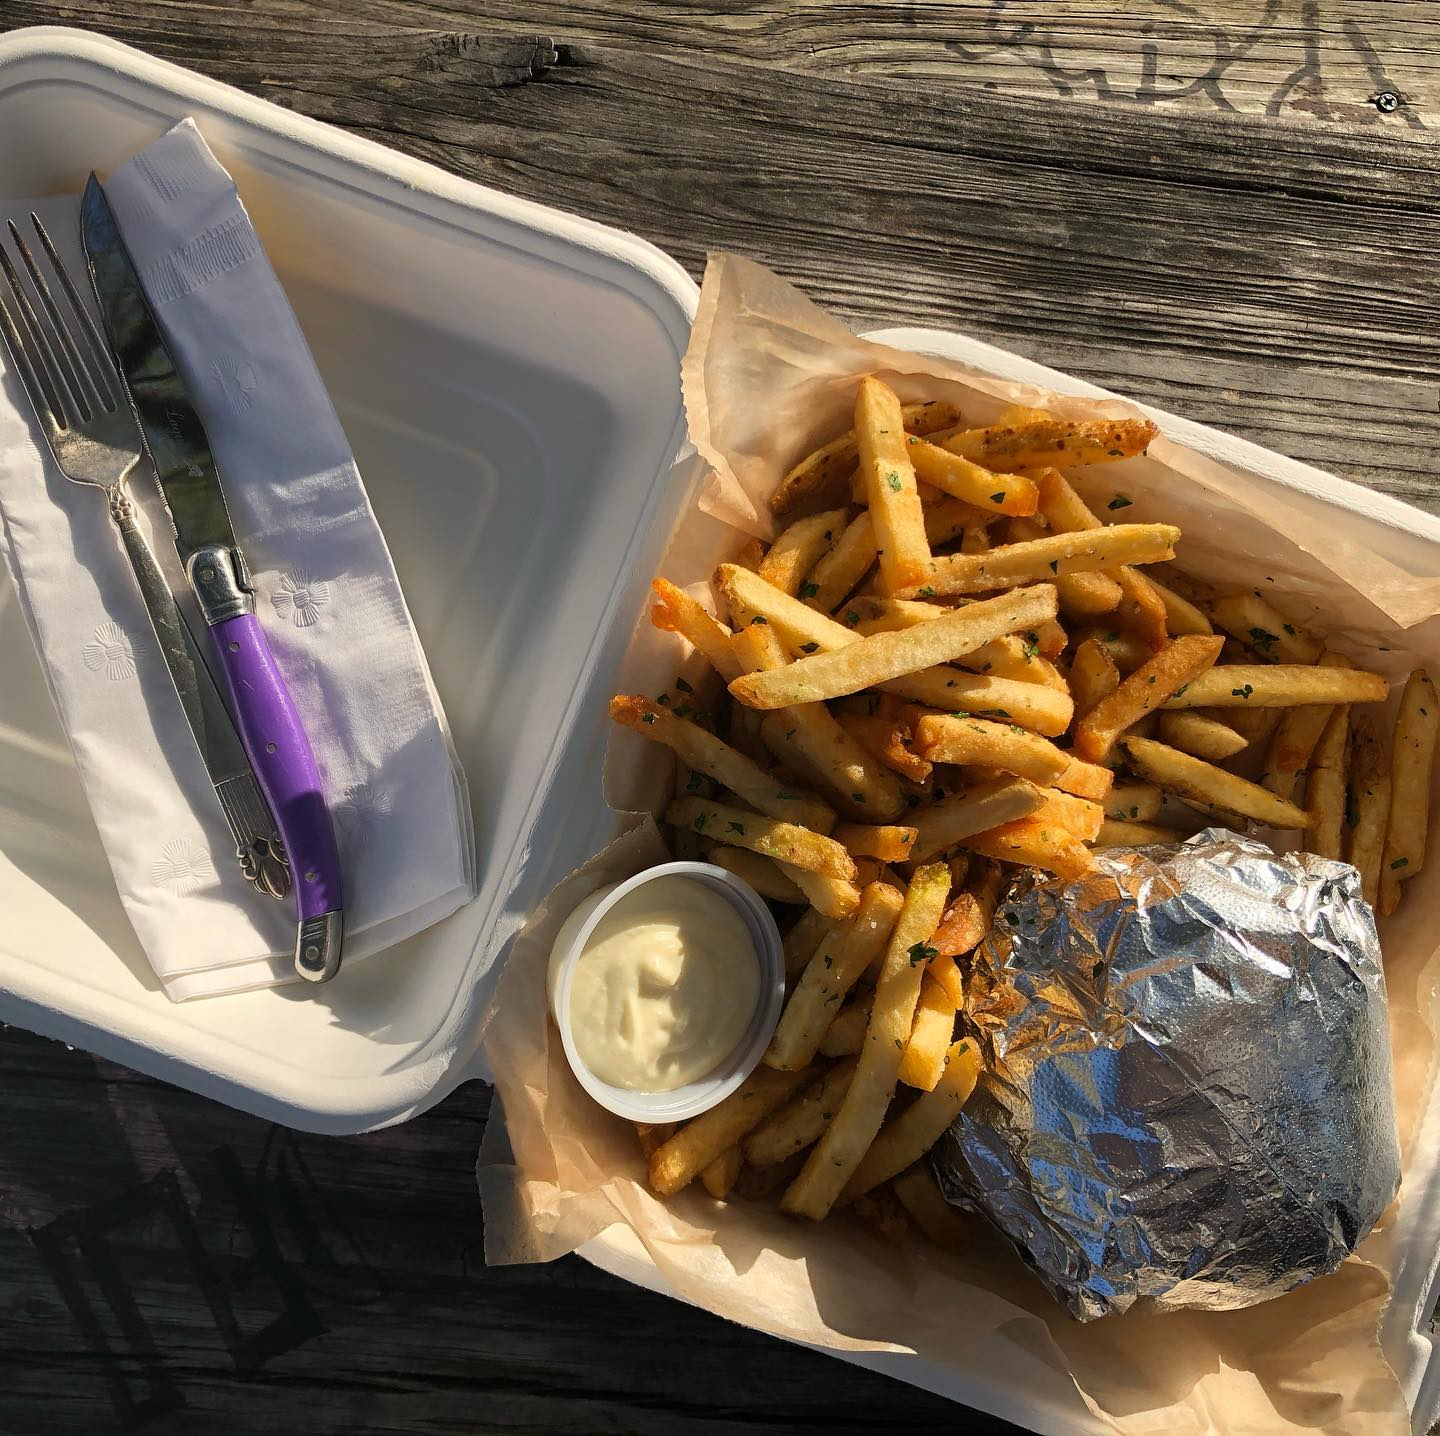 To-go fries and burger from Hopfields